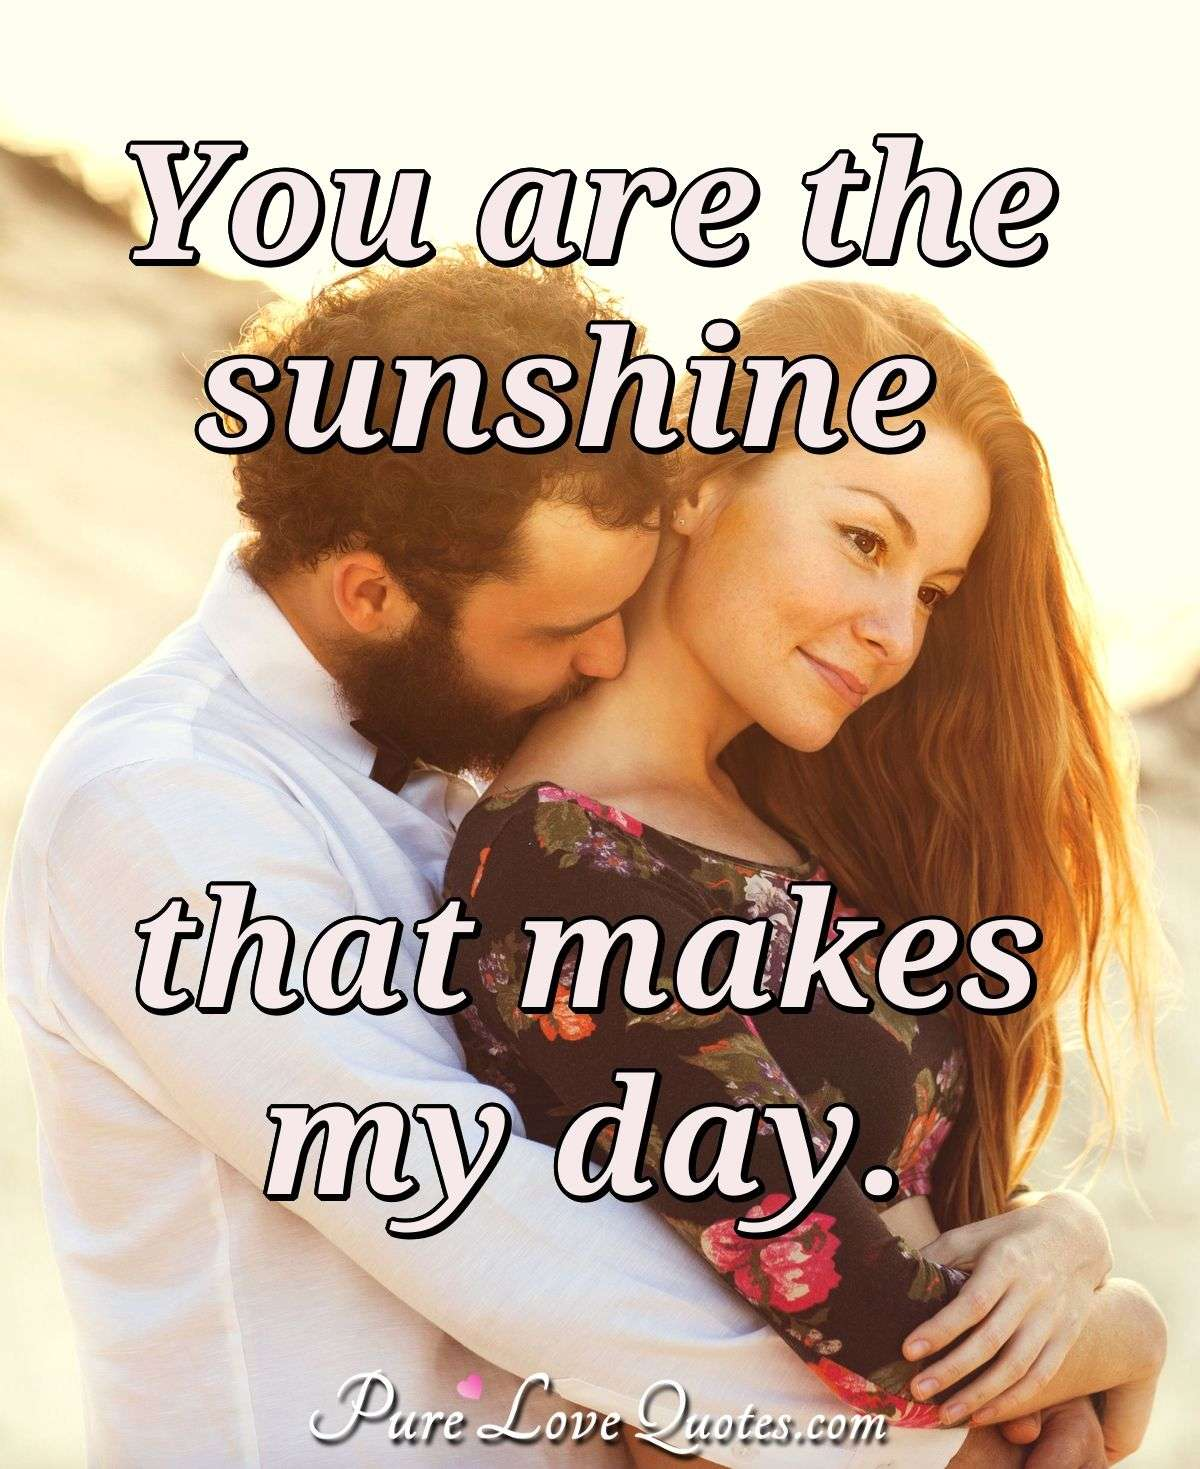 You are the sunshine that makes my day. - Anonymous